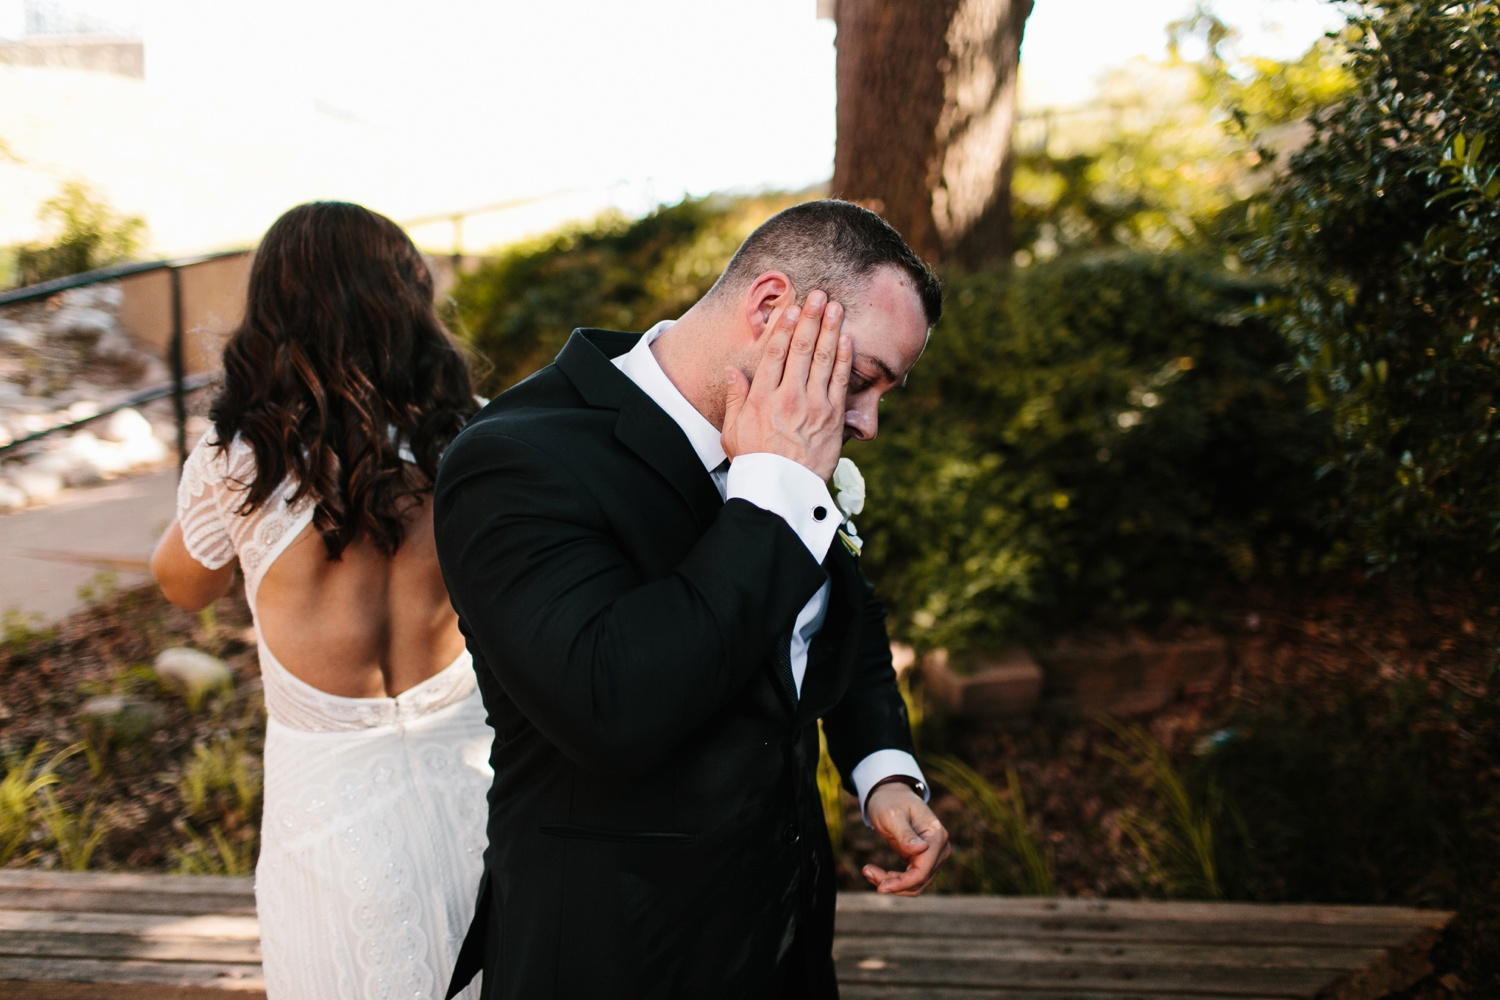 Kadee + Tyler | a raw, emotional wedding at the Filter Building on White Rock Lake in Dallas, TX by North Texas Wedding Photographer, Rachel Meagan Photography 054